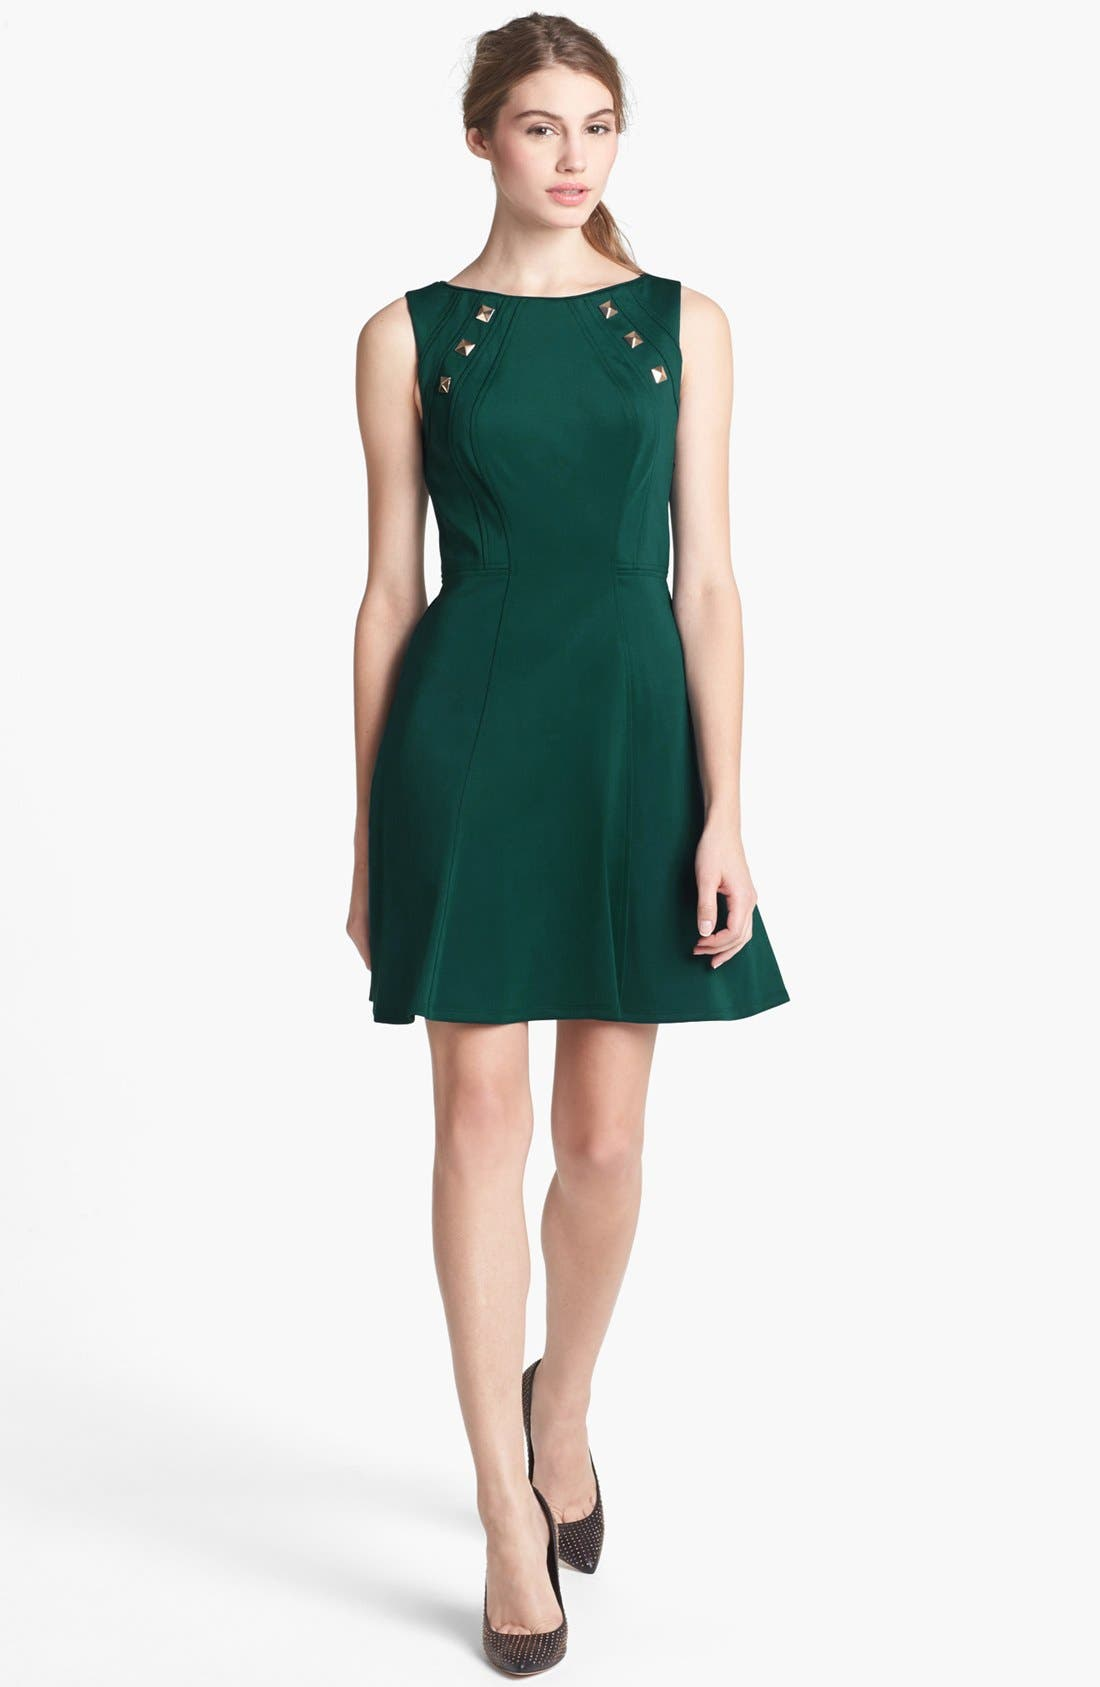 Alternate Image 1 Selected - Vince Camuto Studded Scuba Knit Fit & Flare Dress